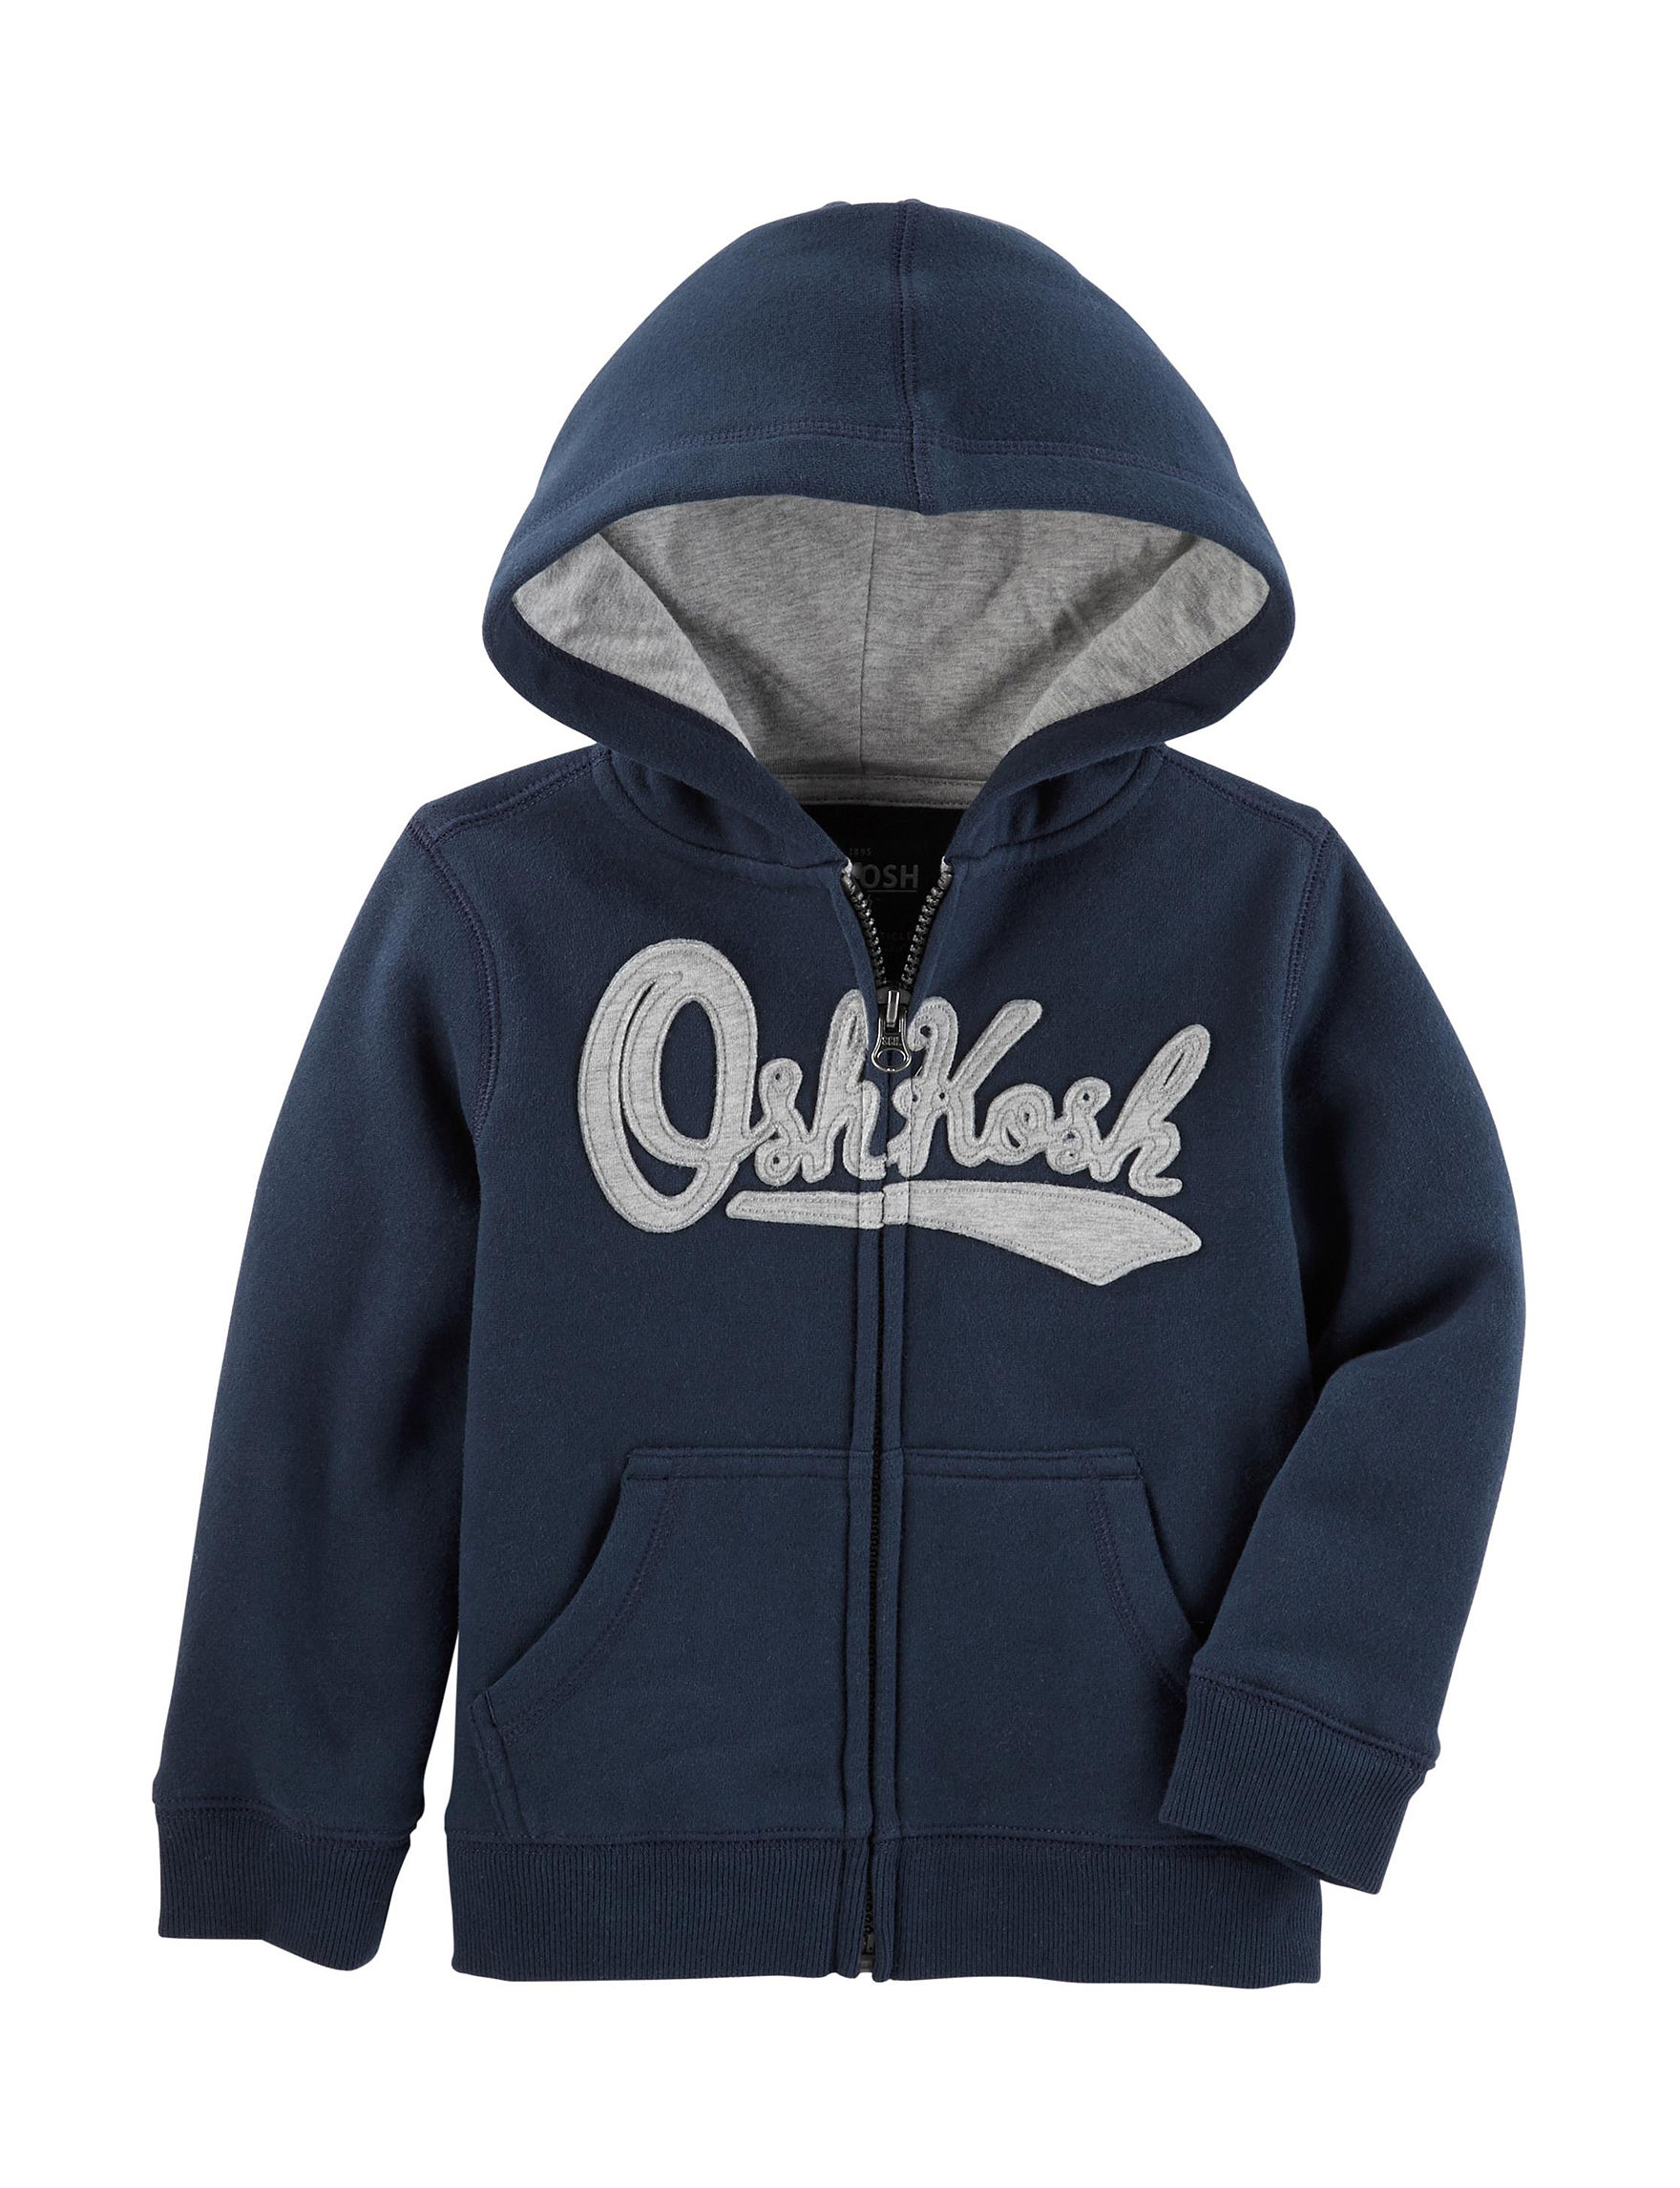 Oshkosh B'Gosh Navy Fleece & Soft Shell Jackets